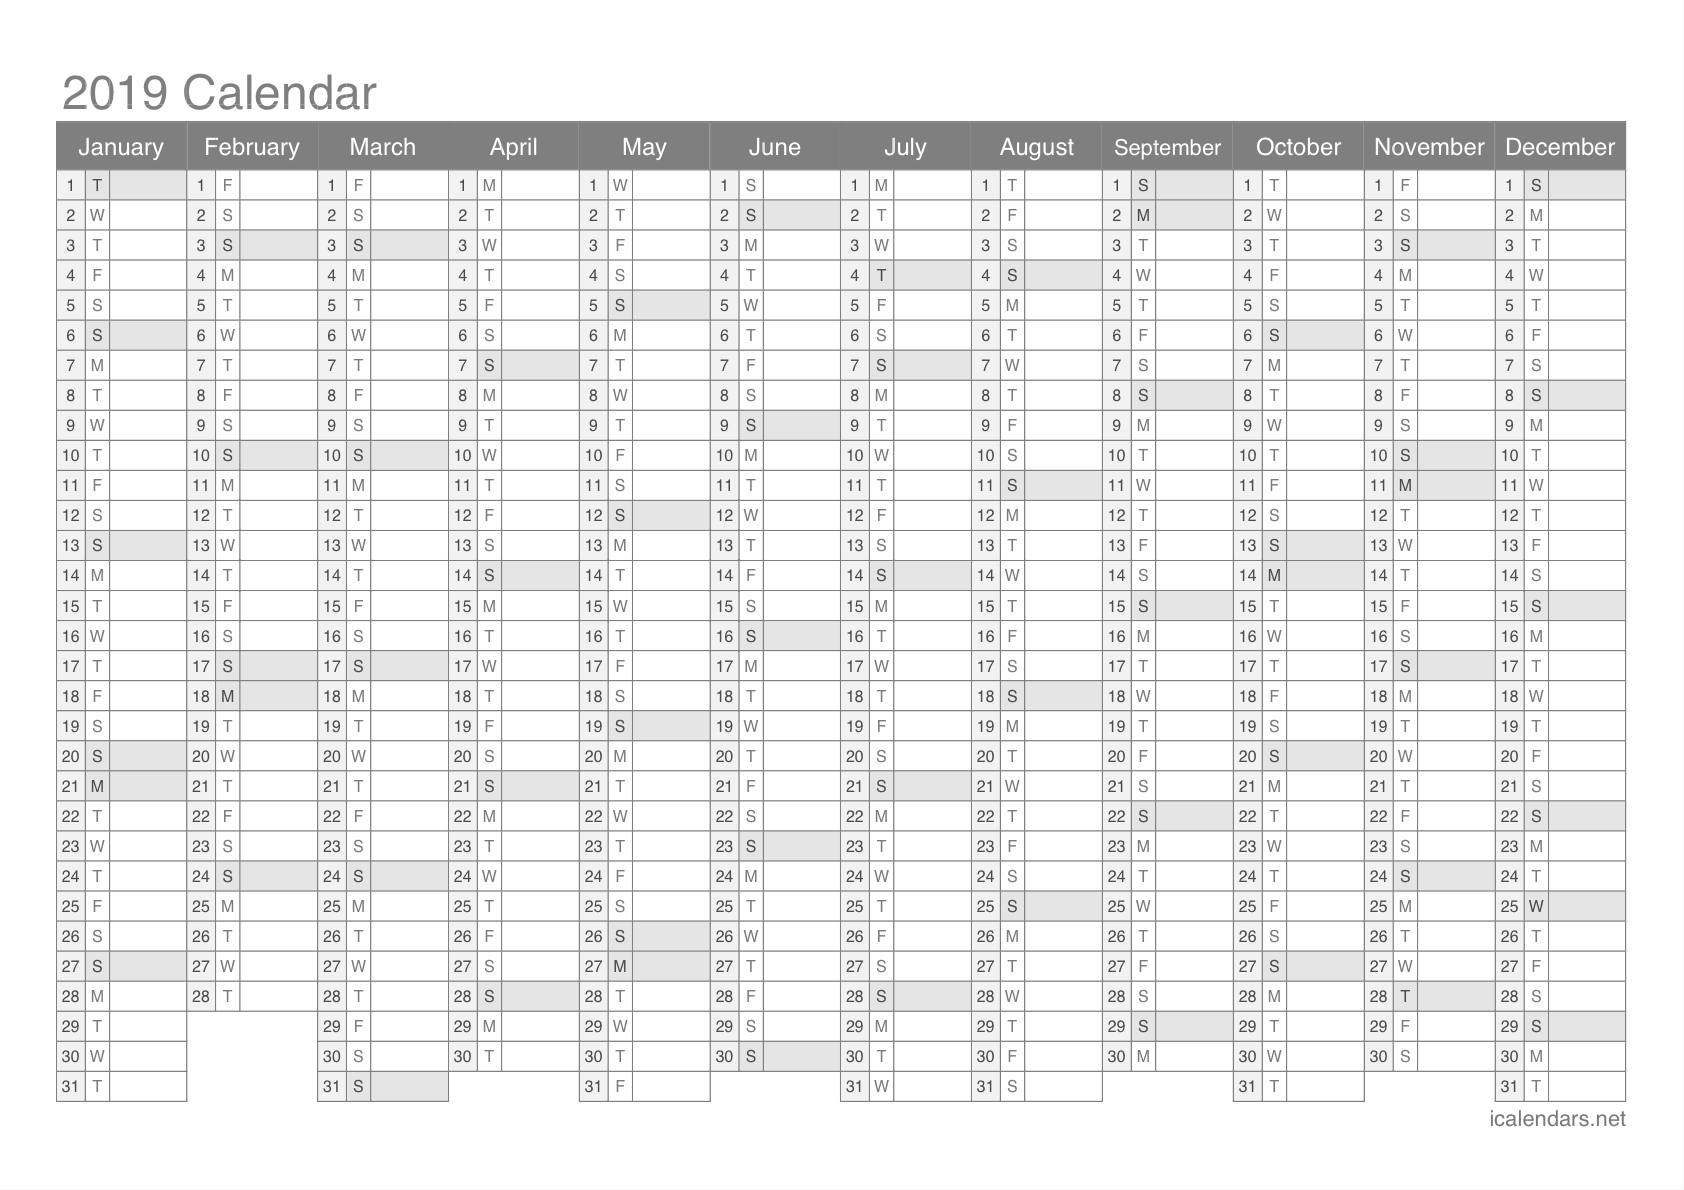 2019 Calendar By Year With Printable PDF Or Excel Icalendars Net